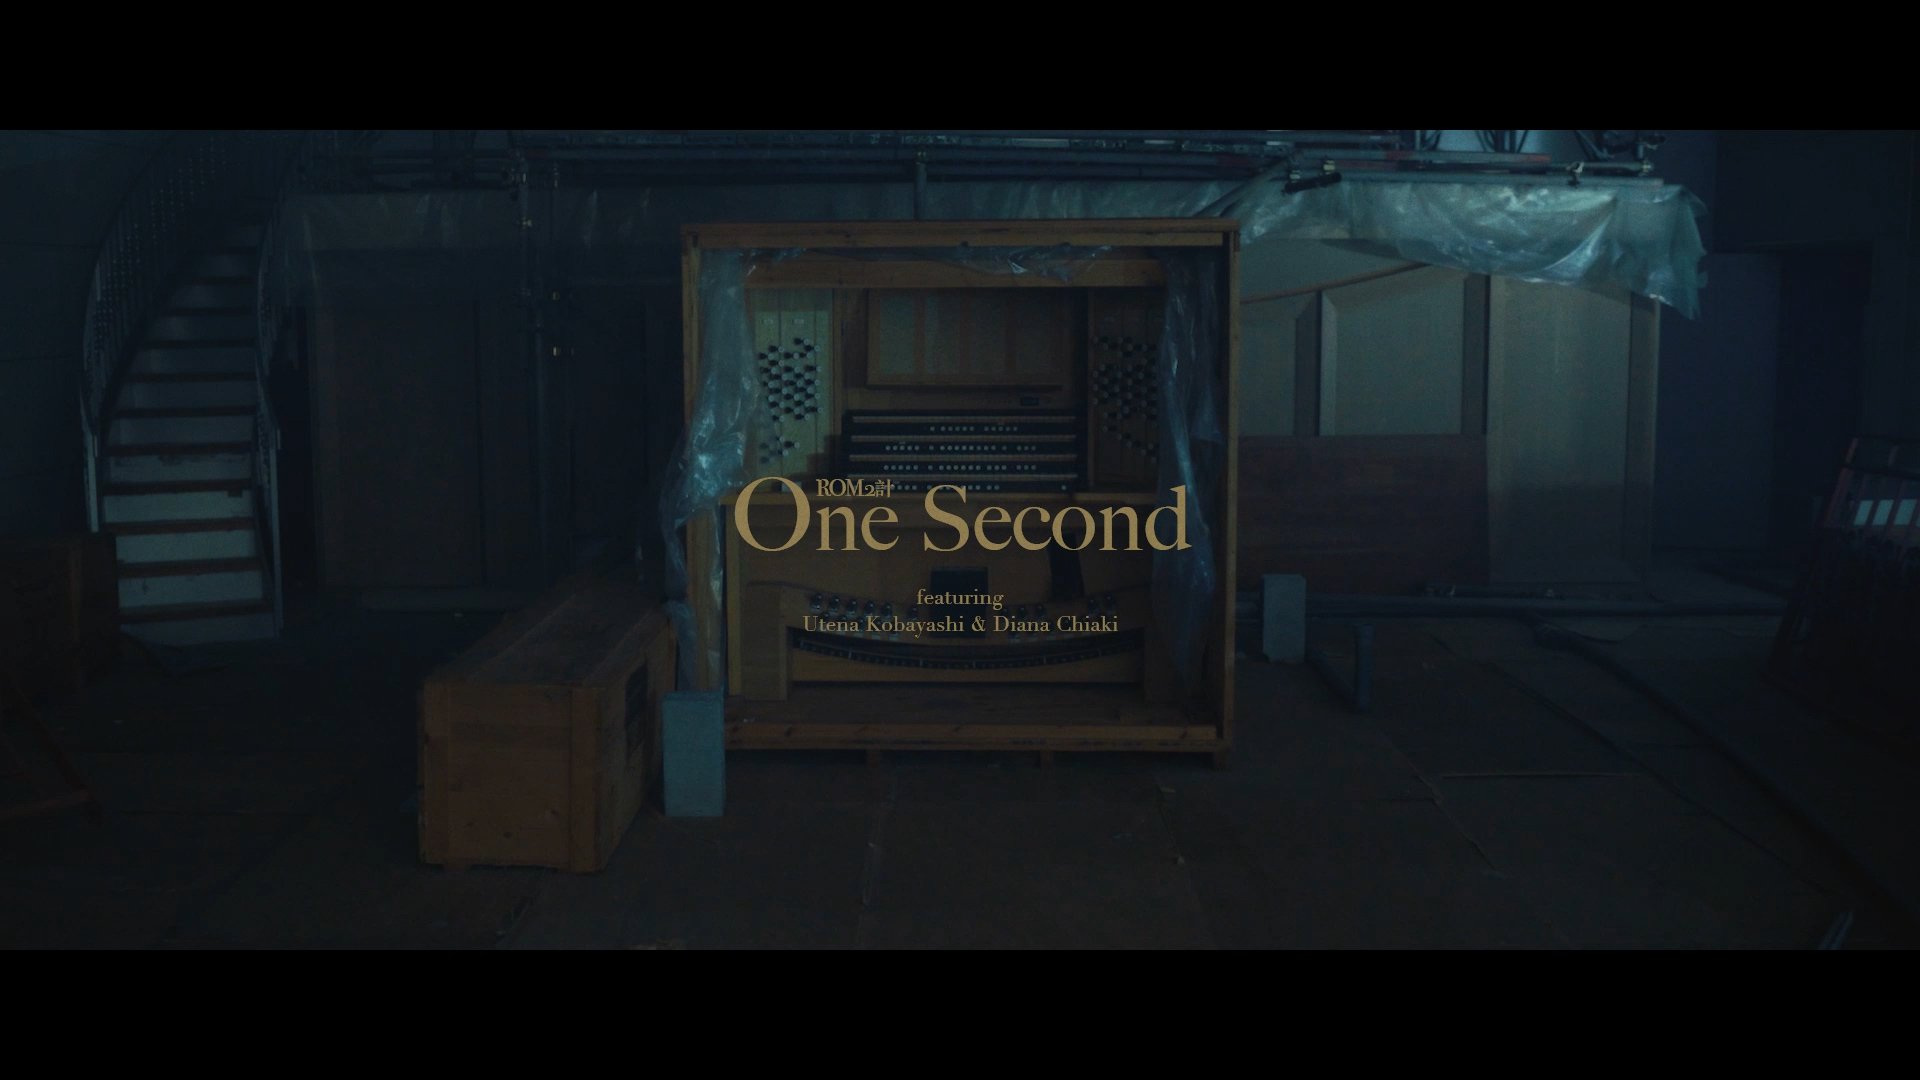 ROM2計「one second featuring 小林うてな / DIANA CHIAKI」